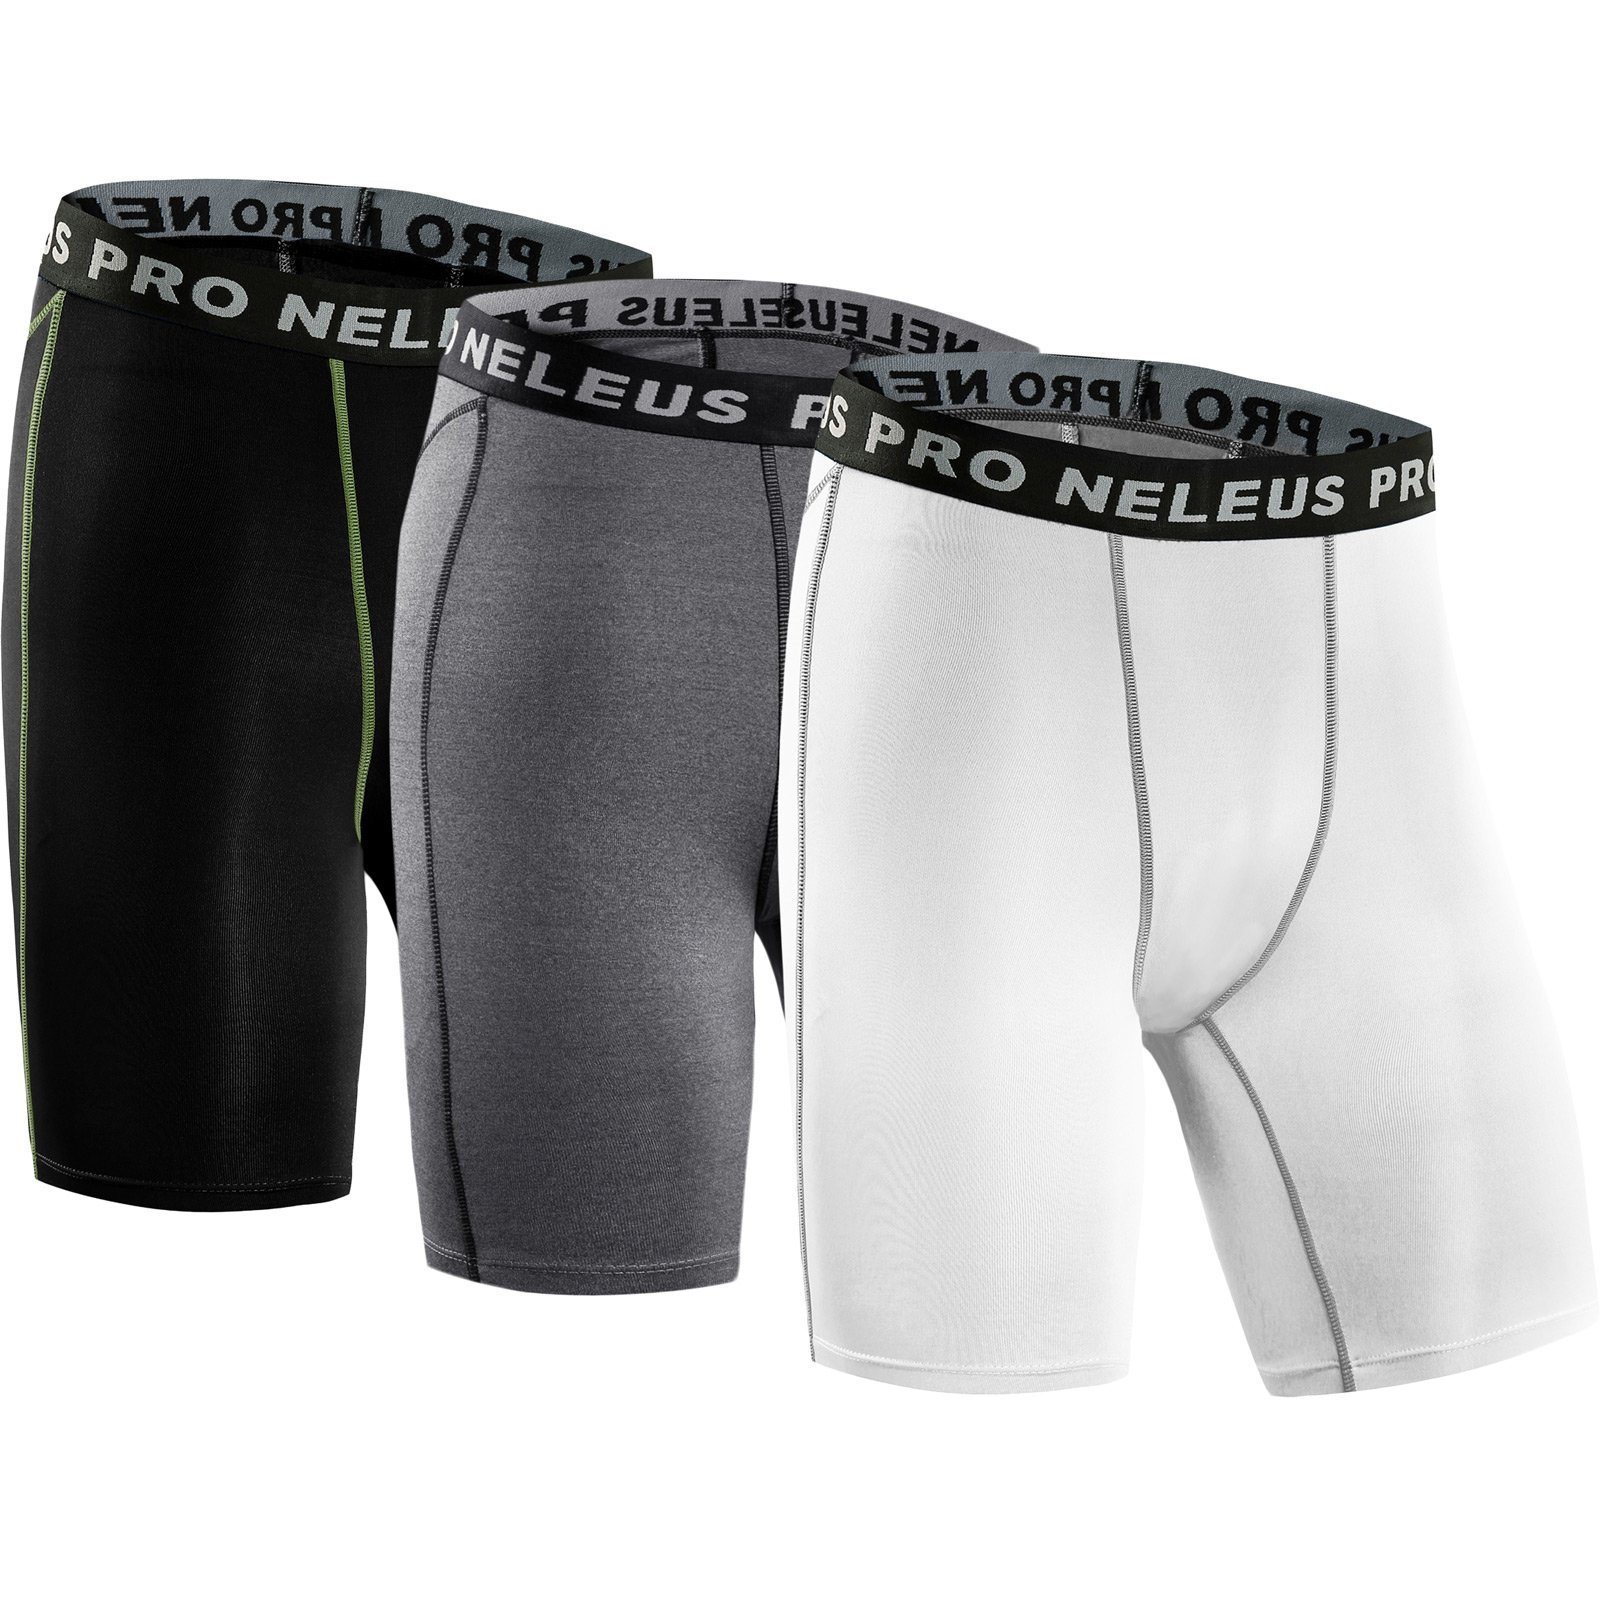 Neleus Men's 3 Pack Compression Short,047,Black,Grey,White,US L,EU XL by Neleus